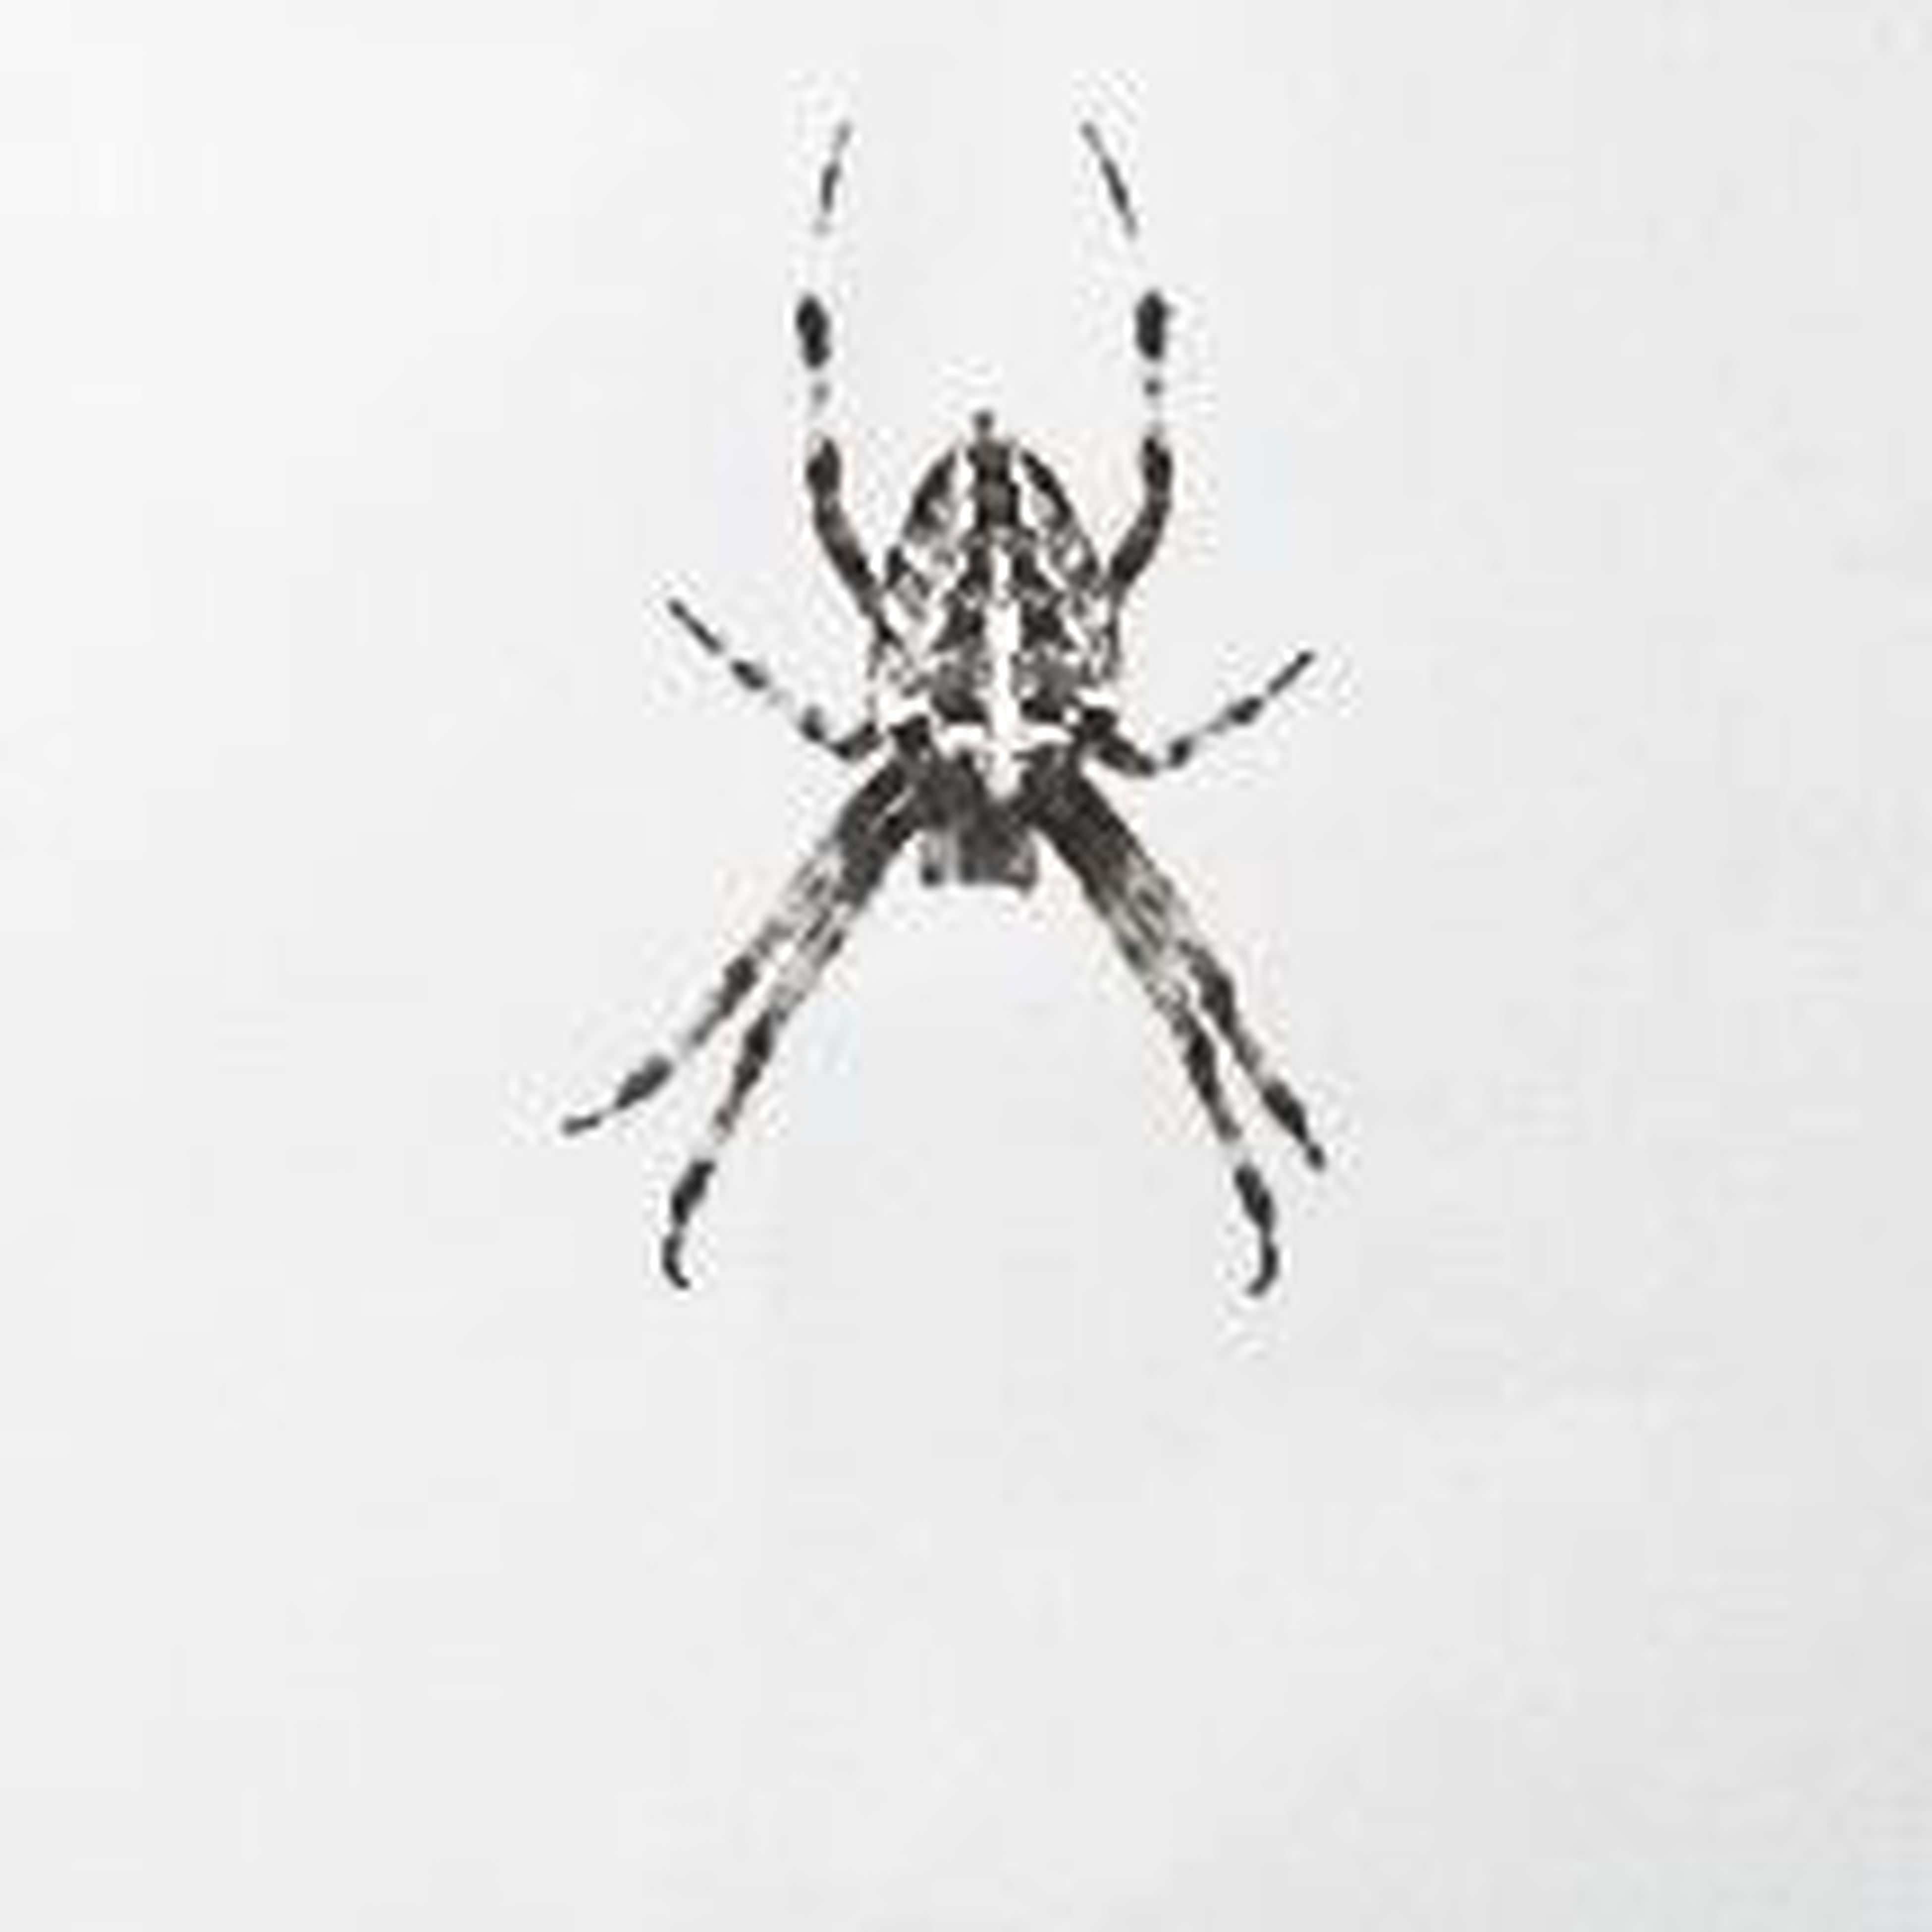 animal themes, studio shot, insect, wildlife, animals in the wild, white background, one animal, copy space, spider, close-up, indoors, no people, nature, wall - building feature, death, day, animal wing, dead animal, full length, cut out